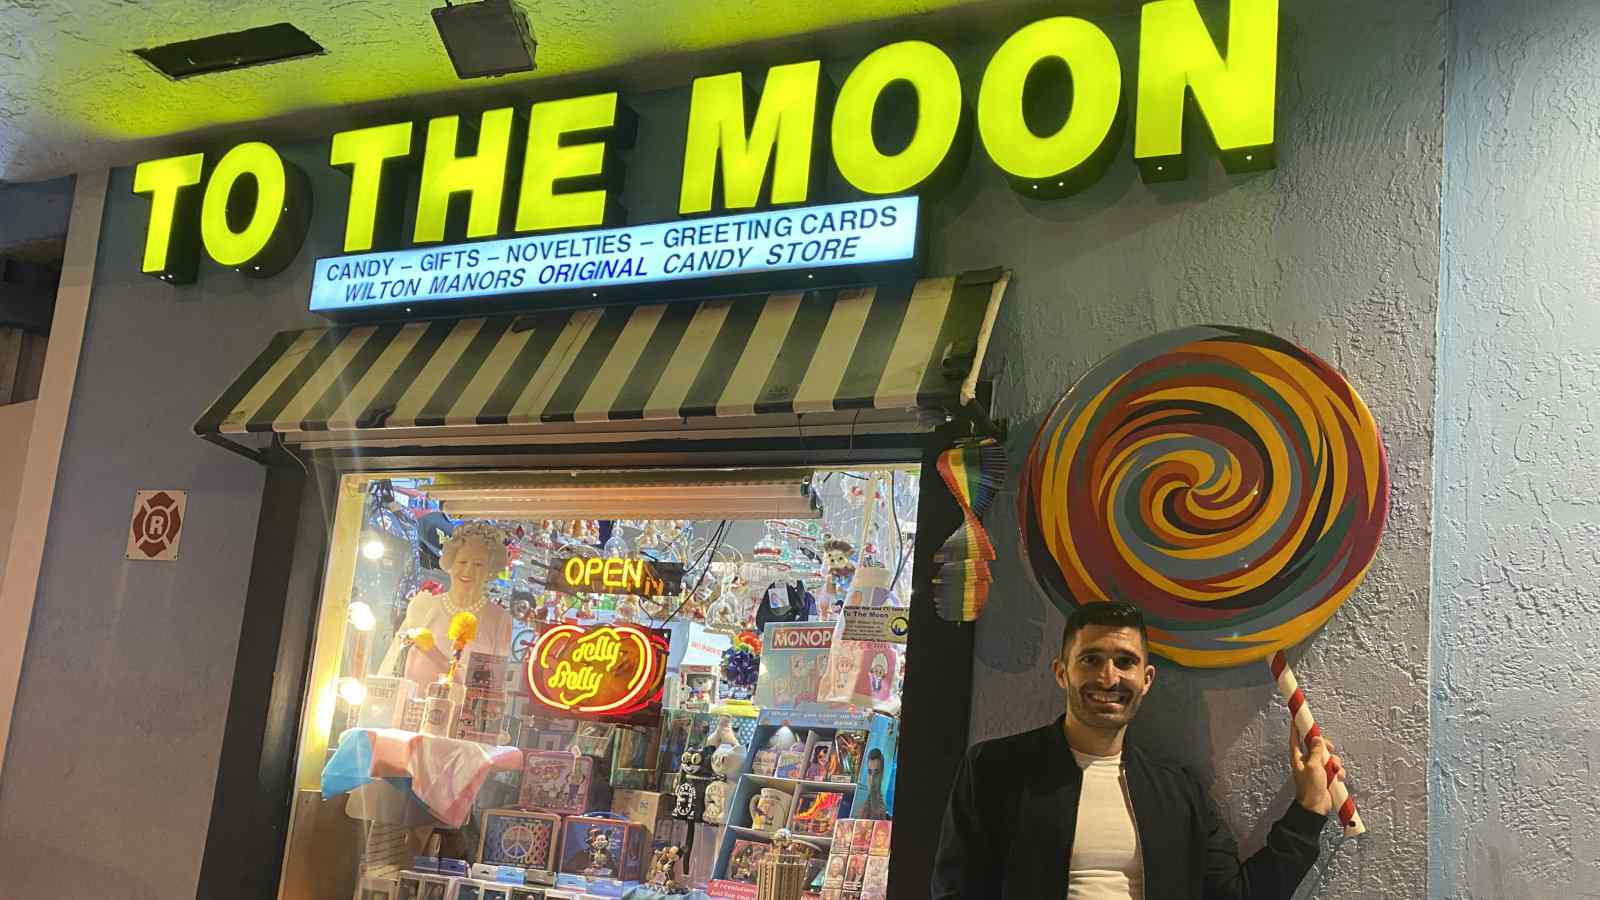 Fort Lauderdale is home to some great gay shops, including the quirky To The Moon with some of the funniest souvenir shops we've ever visited